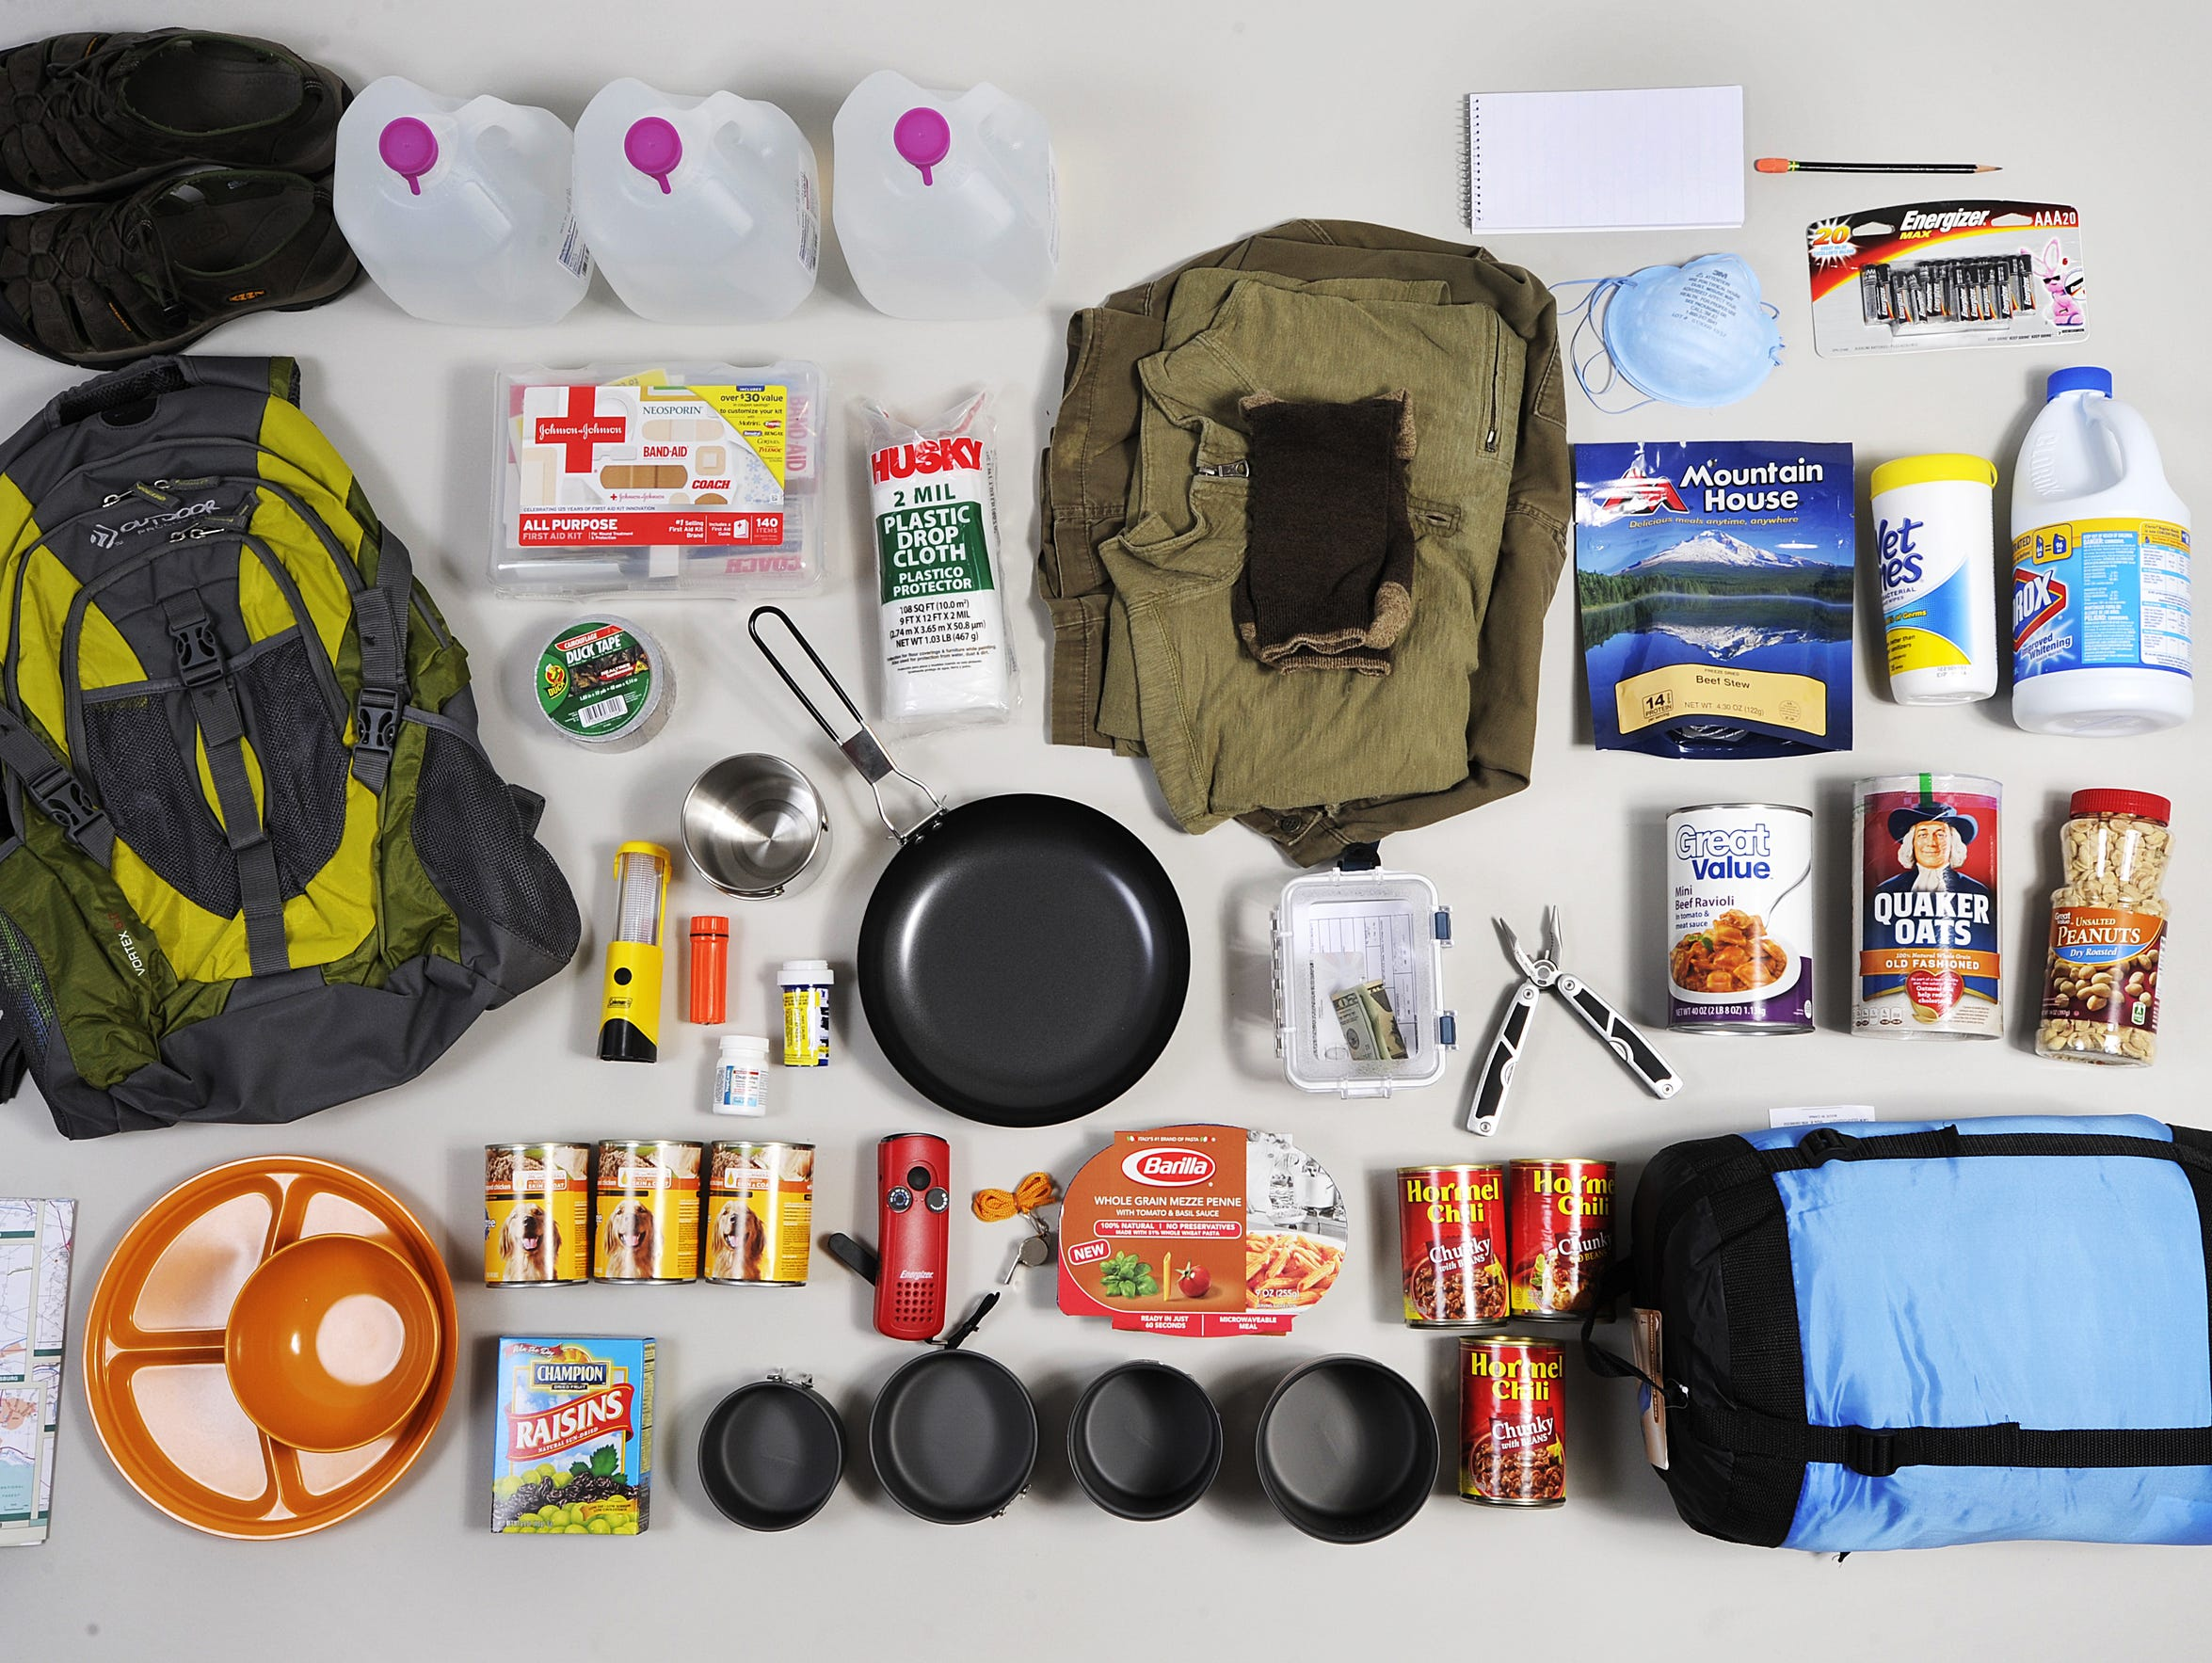 A small sample of what preppers store.